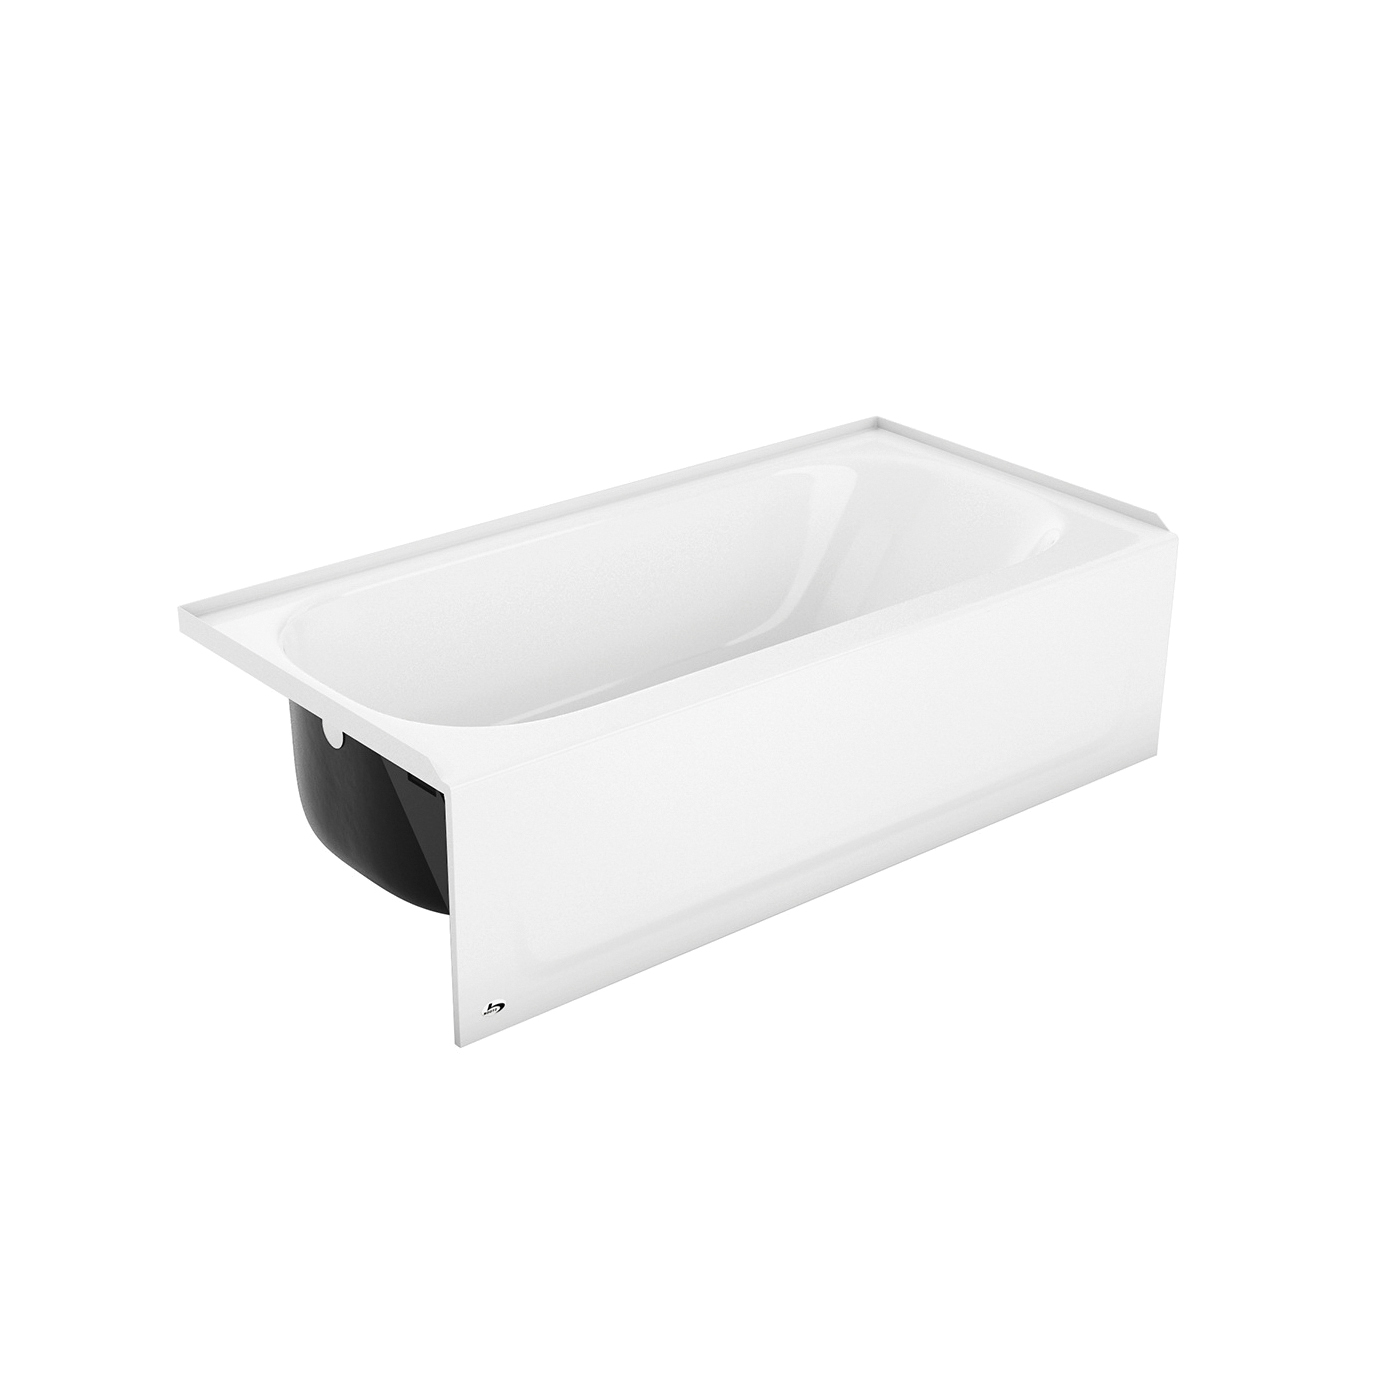 BOOTZ® 011-3341-00 Bathtub With Slip-Resistant Bottom, Maui, Soaking, 60 in W, Left Drain, White, Domestic